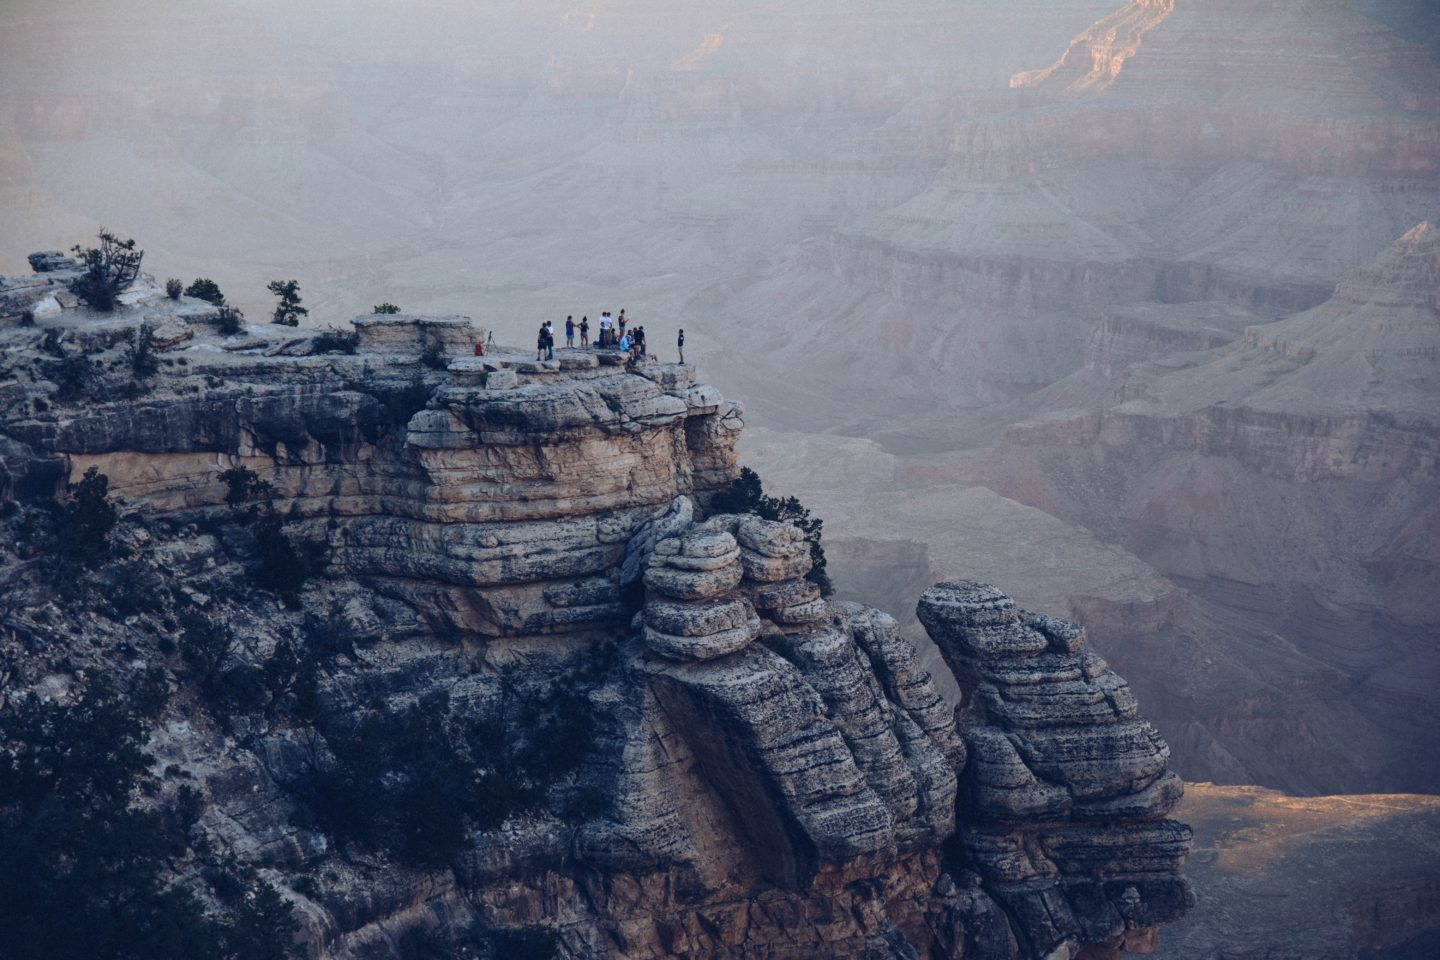 Exploring Trails in Grand Canyon National Park